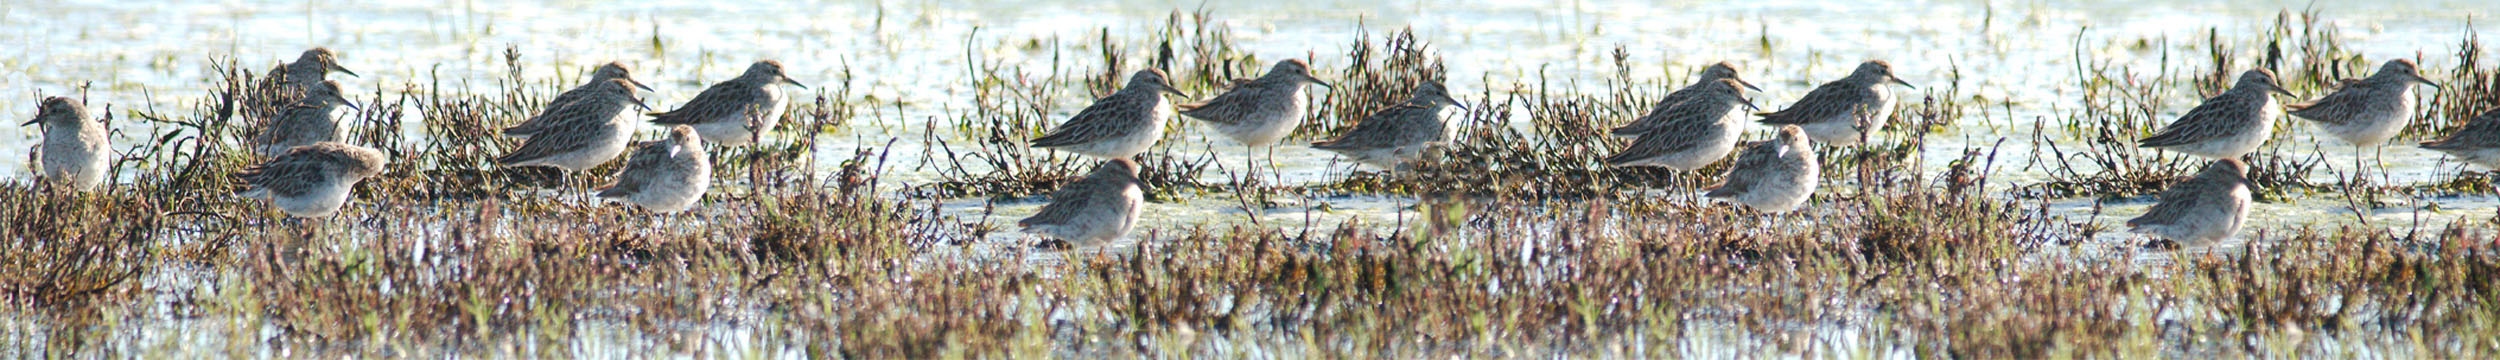 sandpiper-birds-header